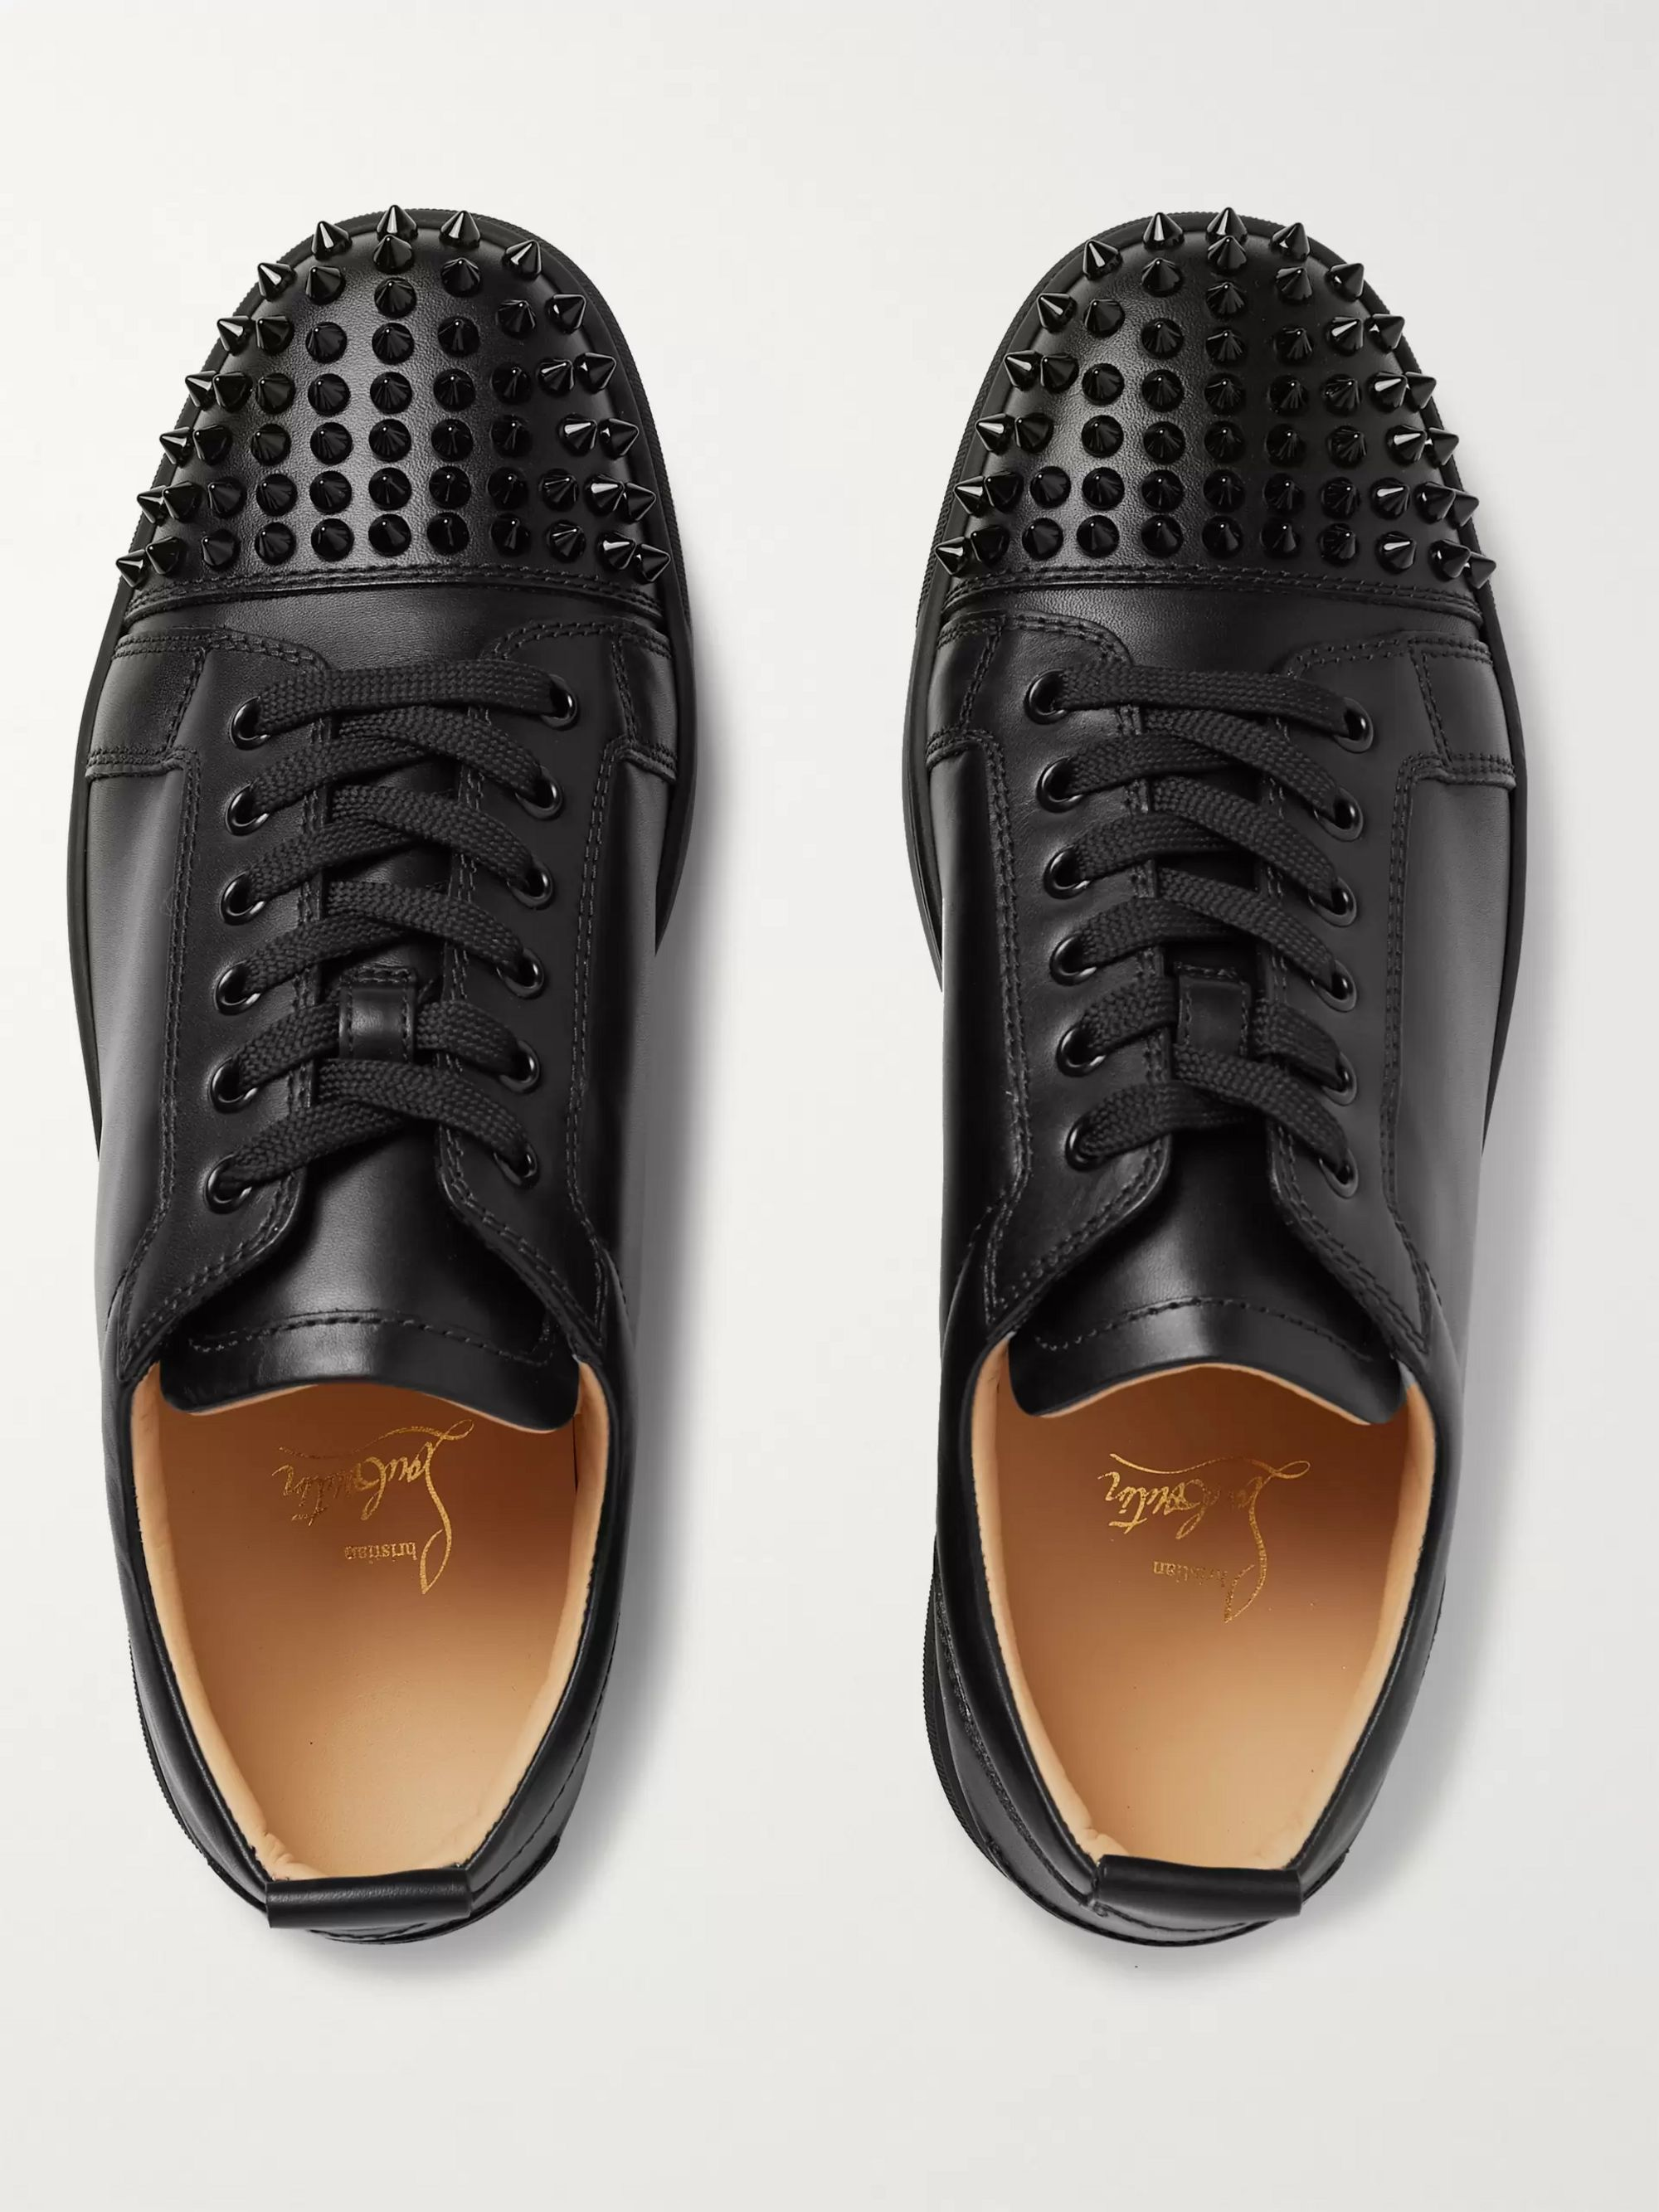 Christian Louboutin Louis Junior Spikes Cap-Toe Leather Sneakers